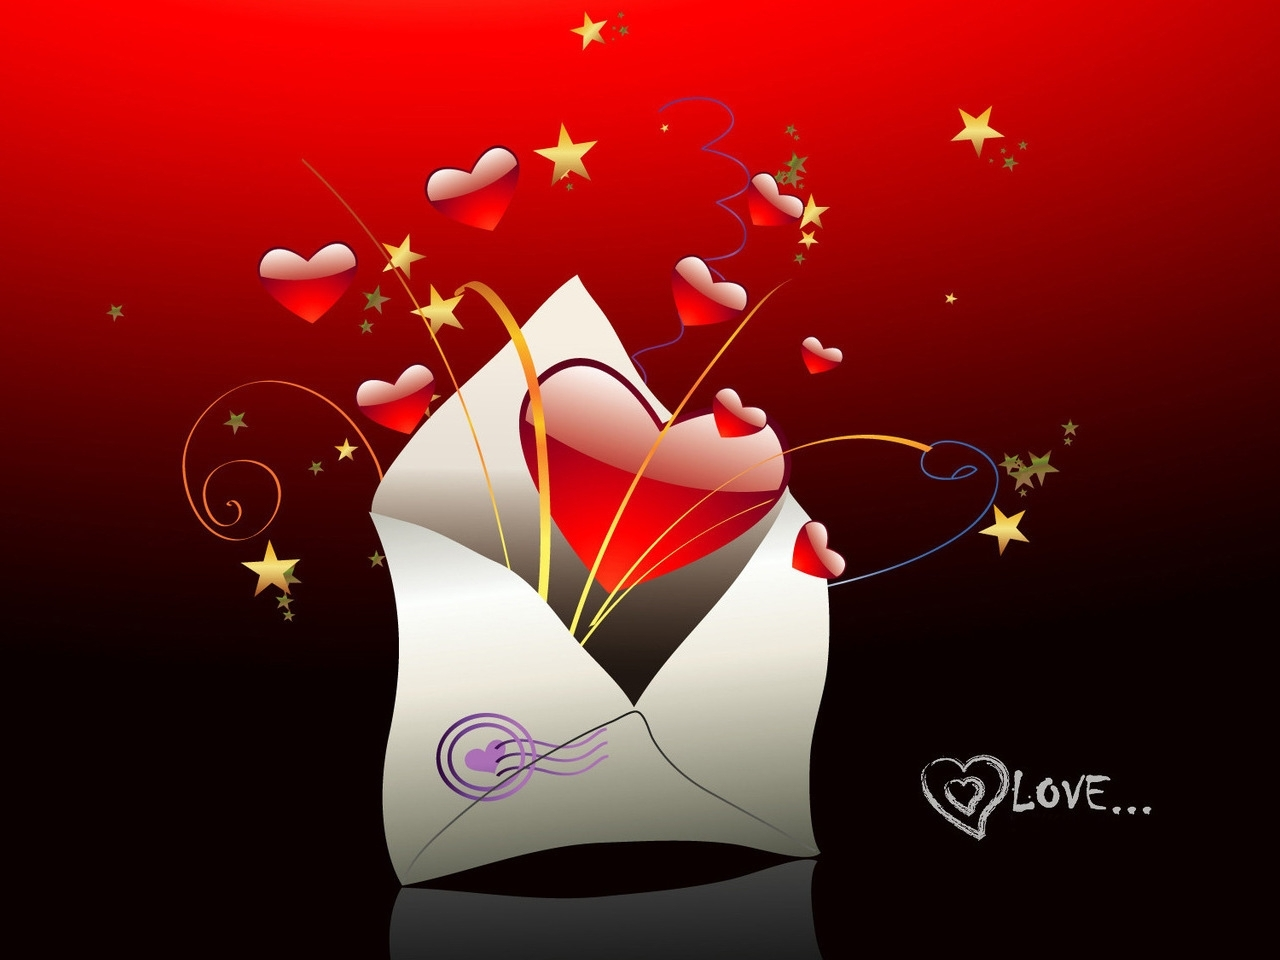 25599 download wallpaper Holidays, Background, Hearts, Love, Valentine's Day screensavers and pictures for free